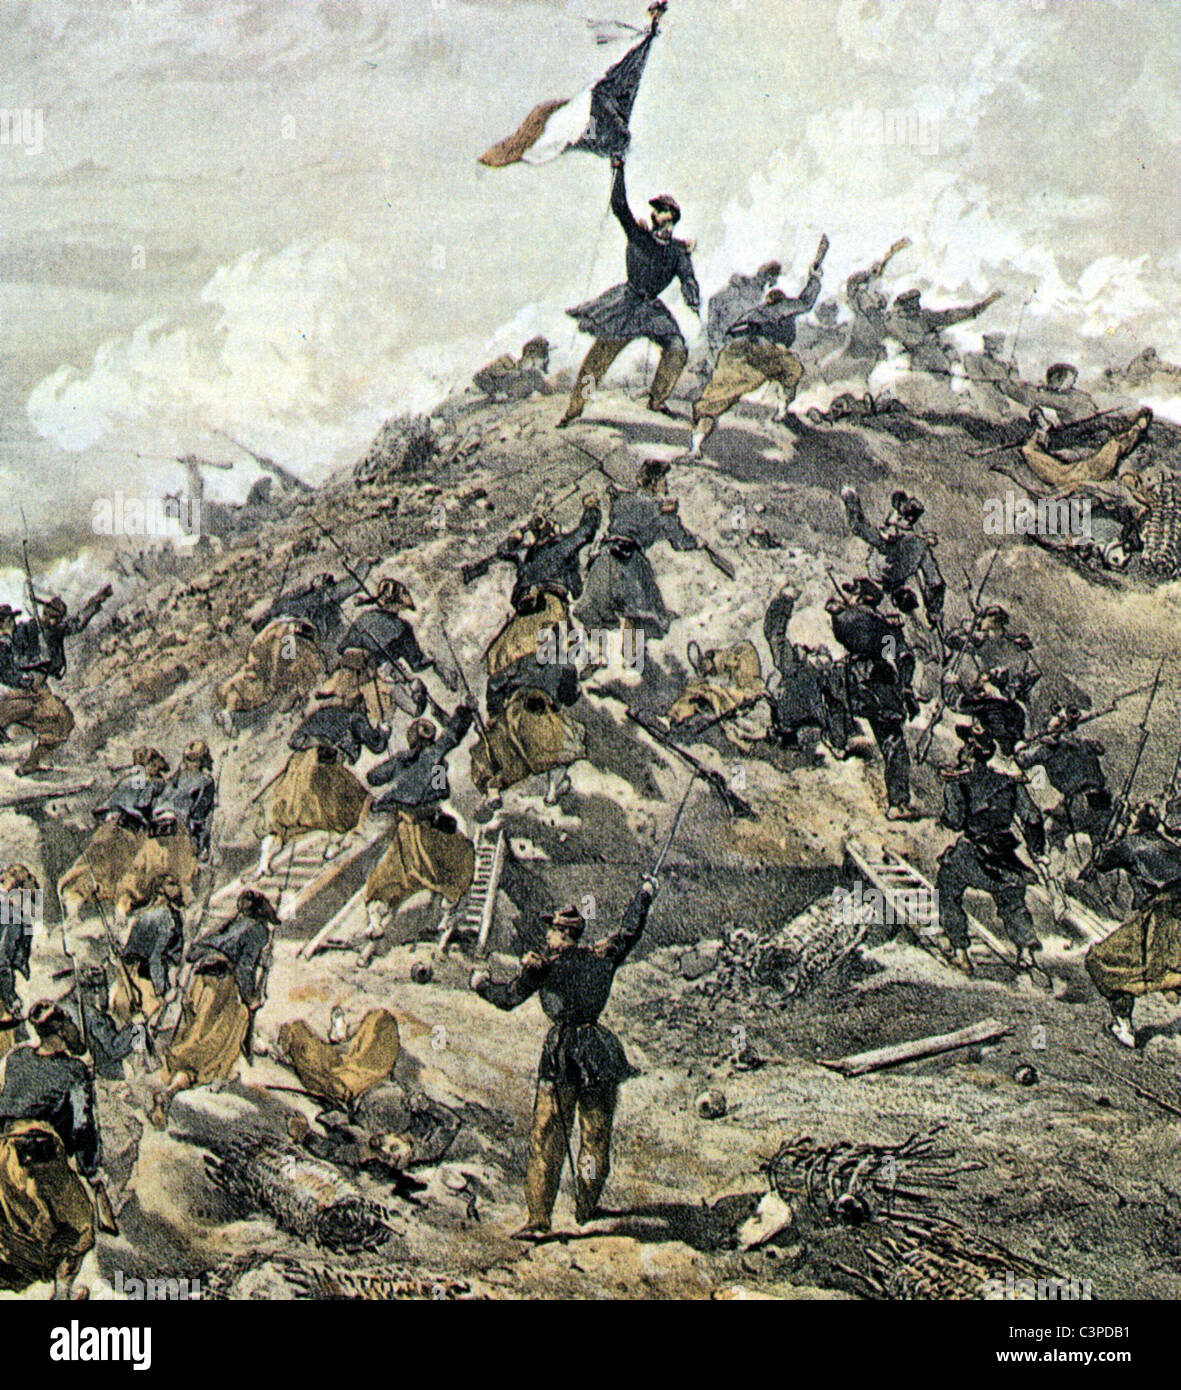 CRIMEAN WAR : Battle of Malakoff 7 September 1855 during the siege of Sevastopol from painting by William Simpson - Stock Image